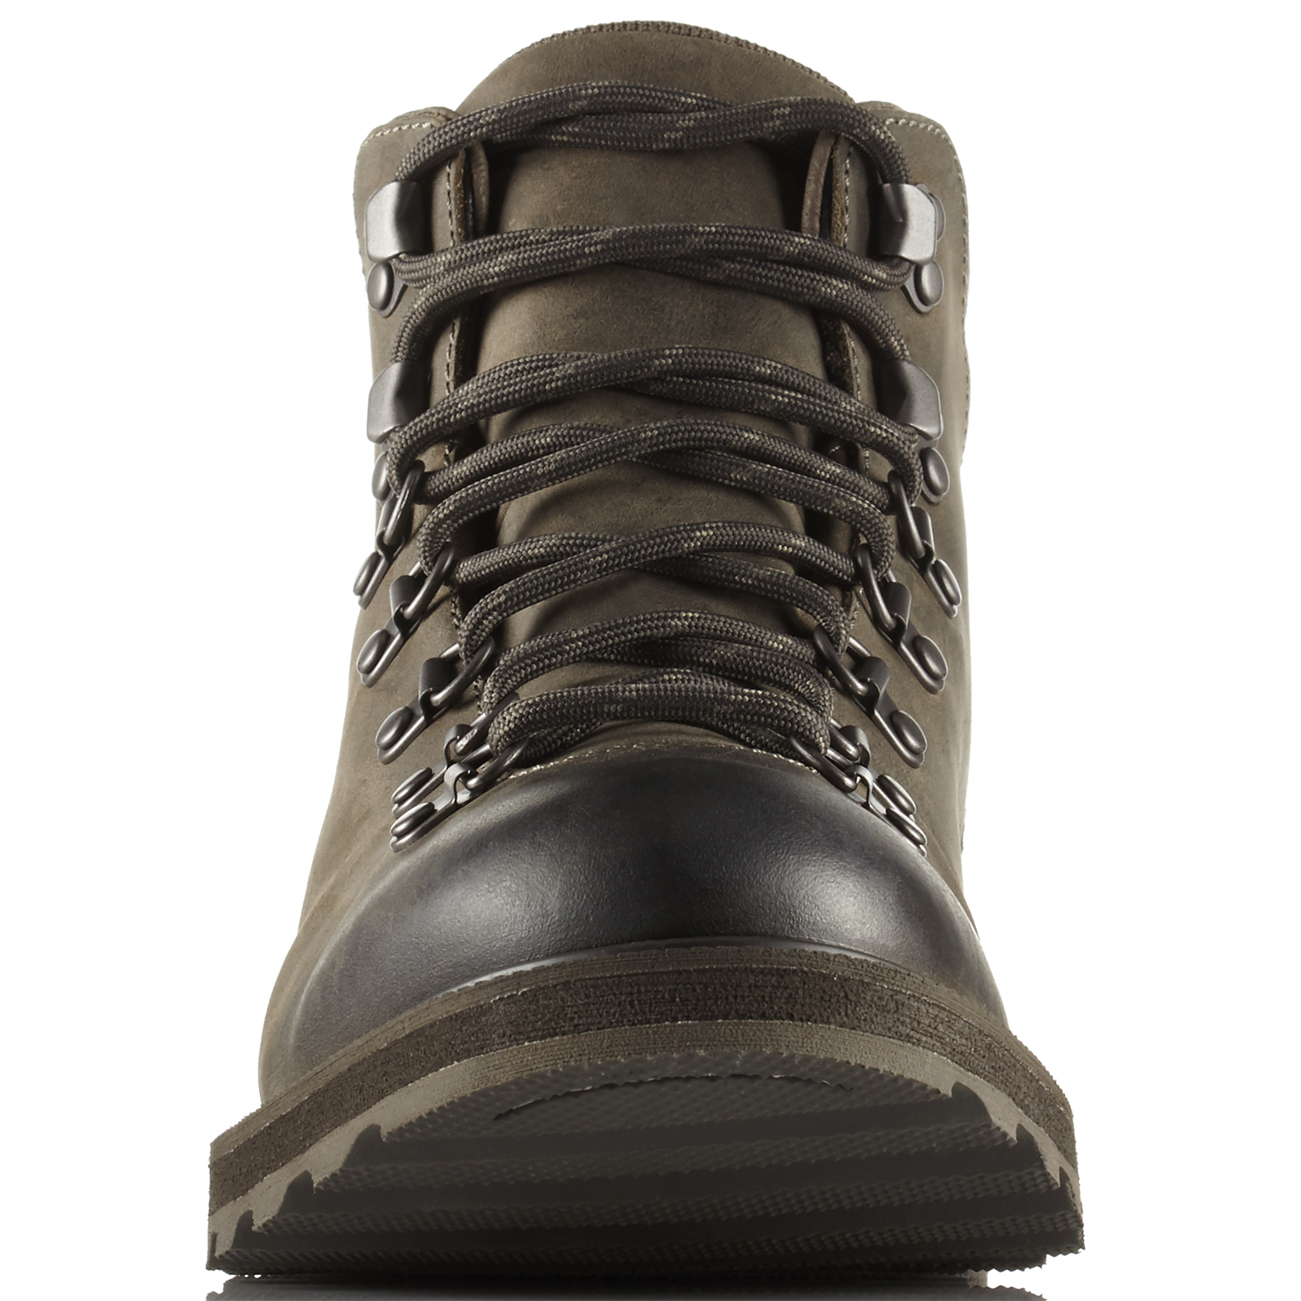 028766e7b11 Details about Mens Sorel Madson Hiker Waterproof Hiking Walking Leather  Ankle Boots UK 7-13